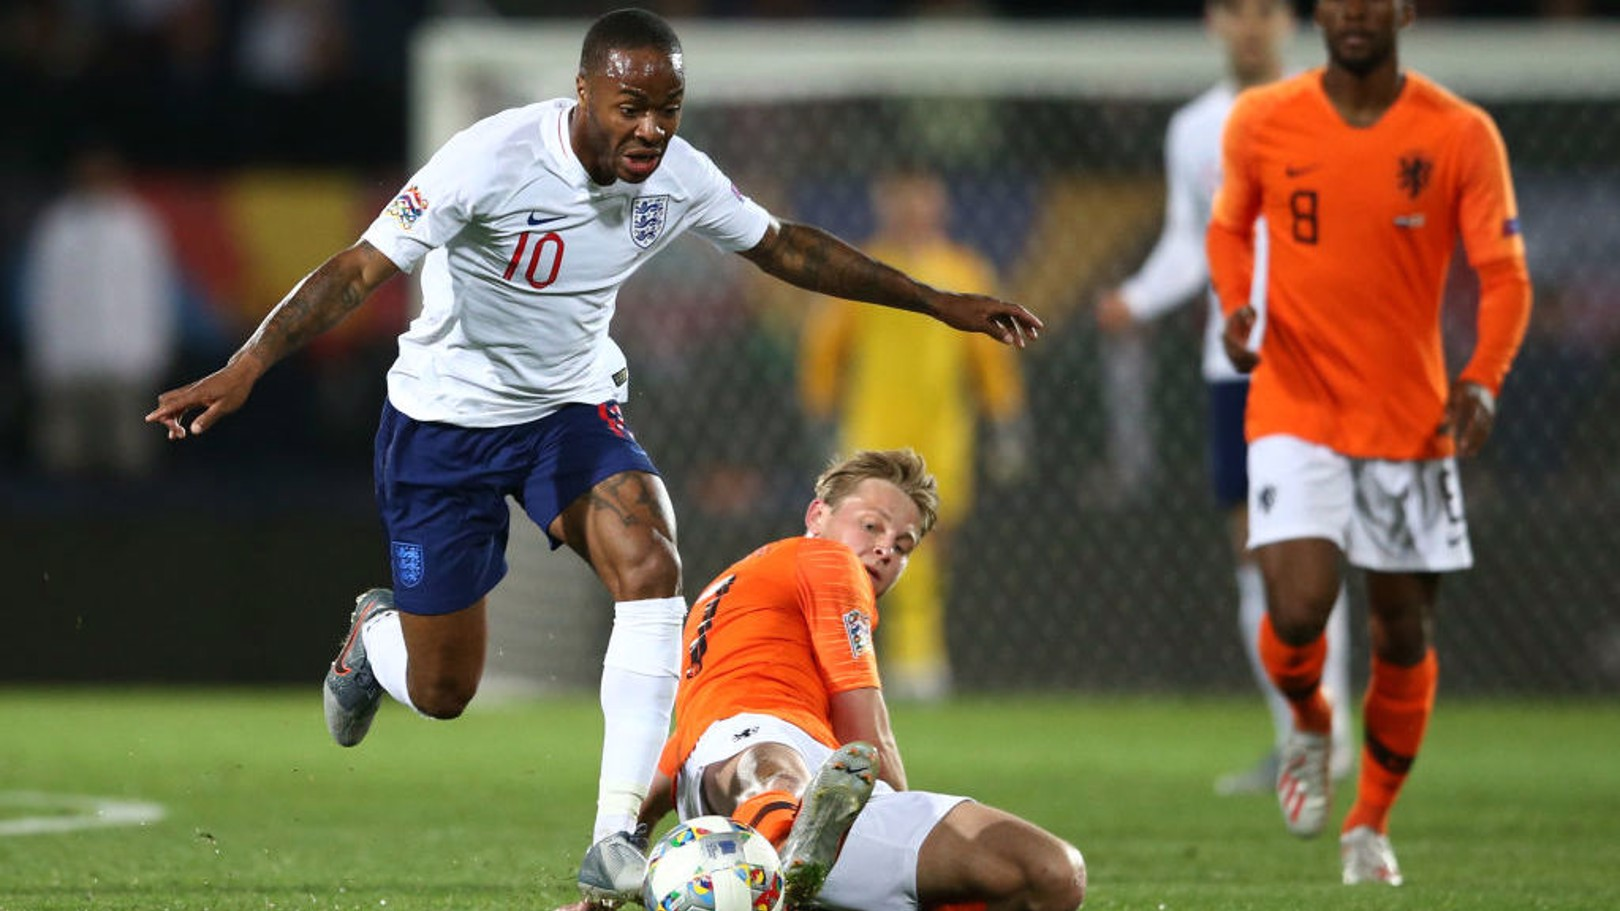 FORWARD MARCH: Raheem Sterling, named England skipper for the night, looks to put the Three Lions on the front foot.